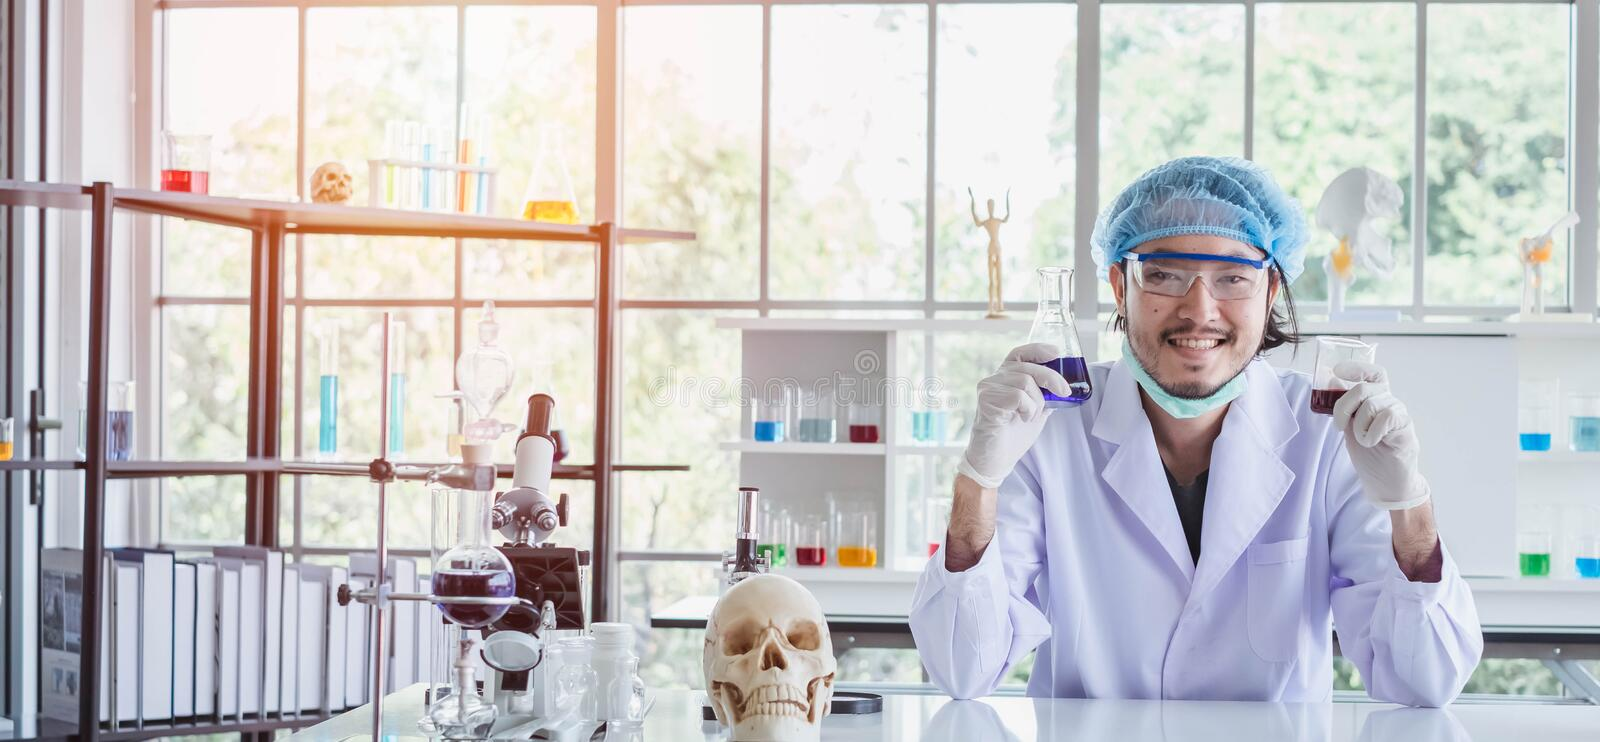 A happy male scientist showing the successful results of his experiment in a science lab royalty free stock photo